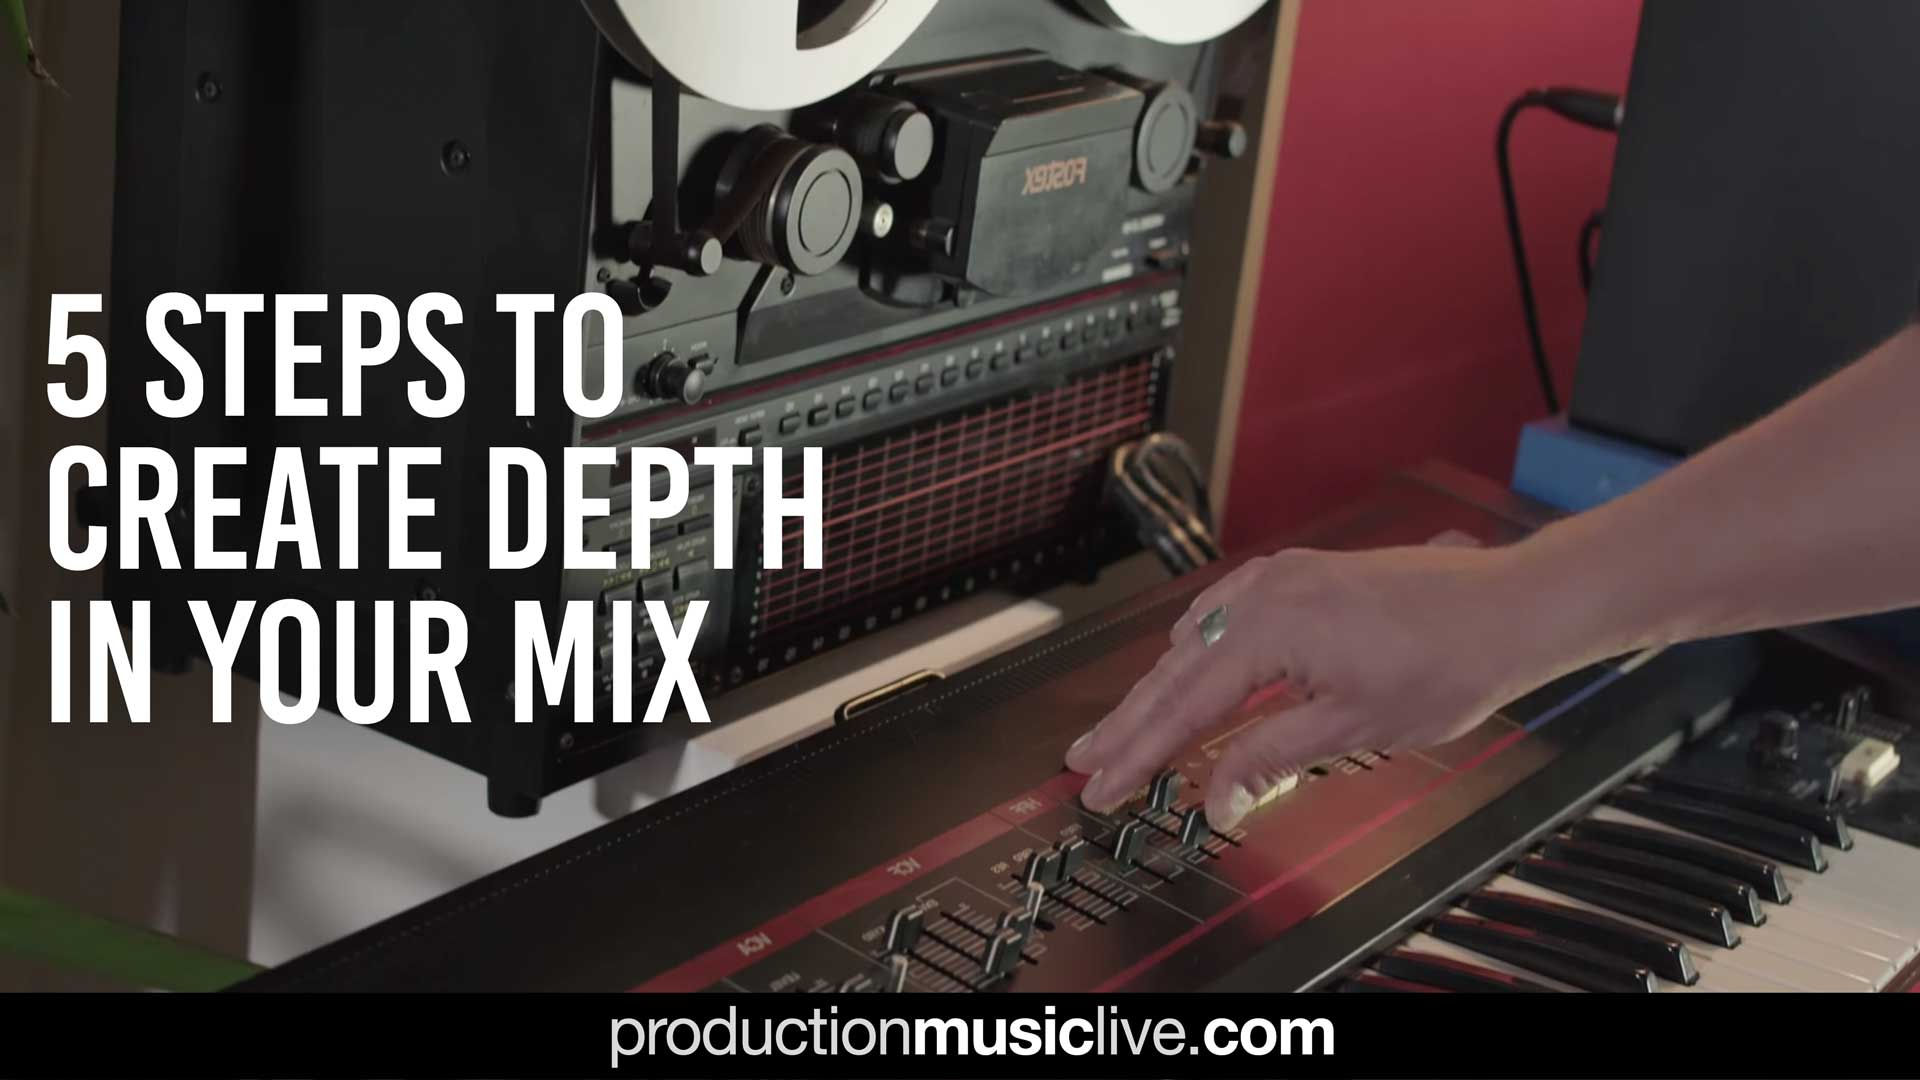 5 Steps To Create Depth In Your Mix